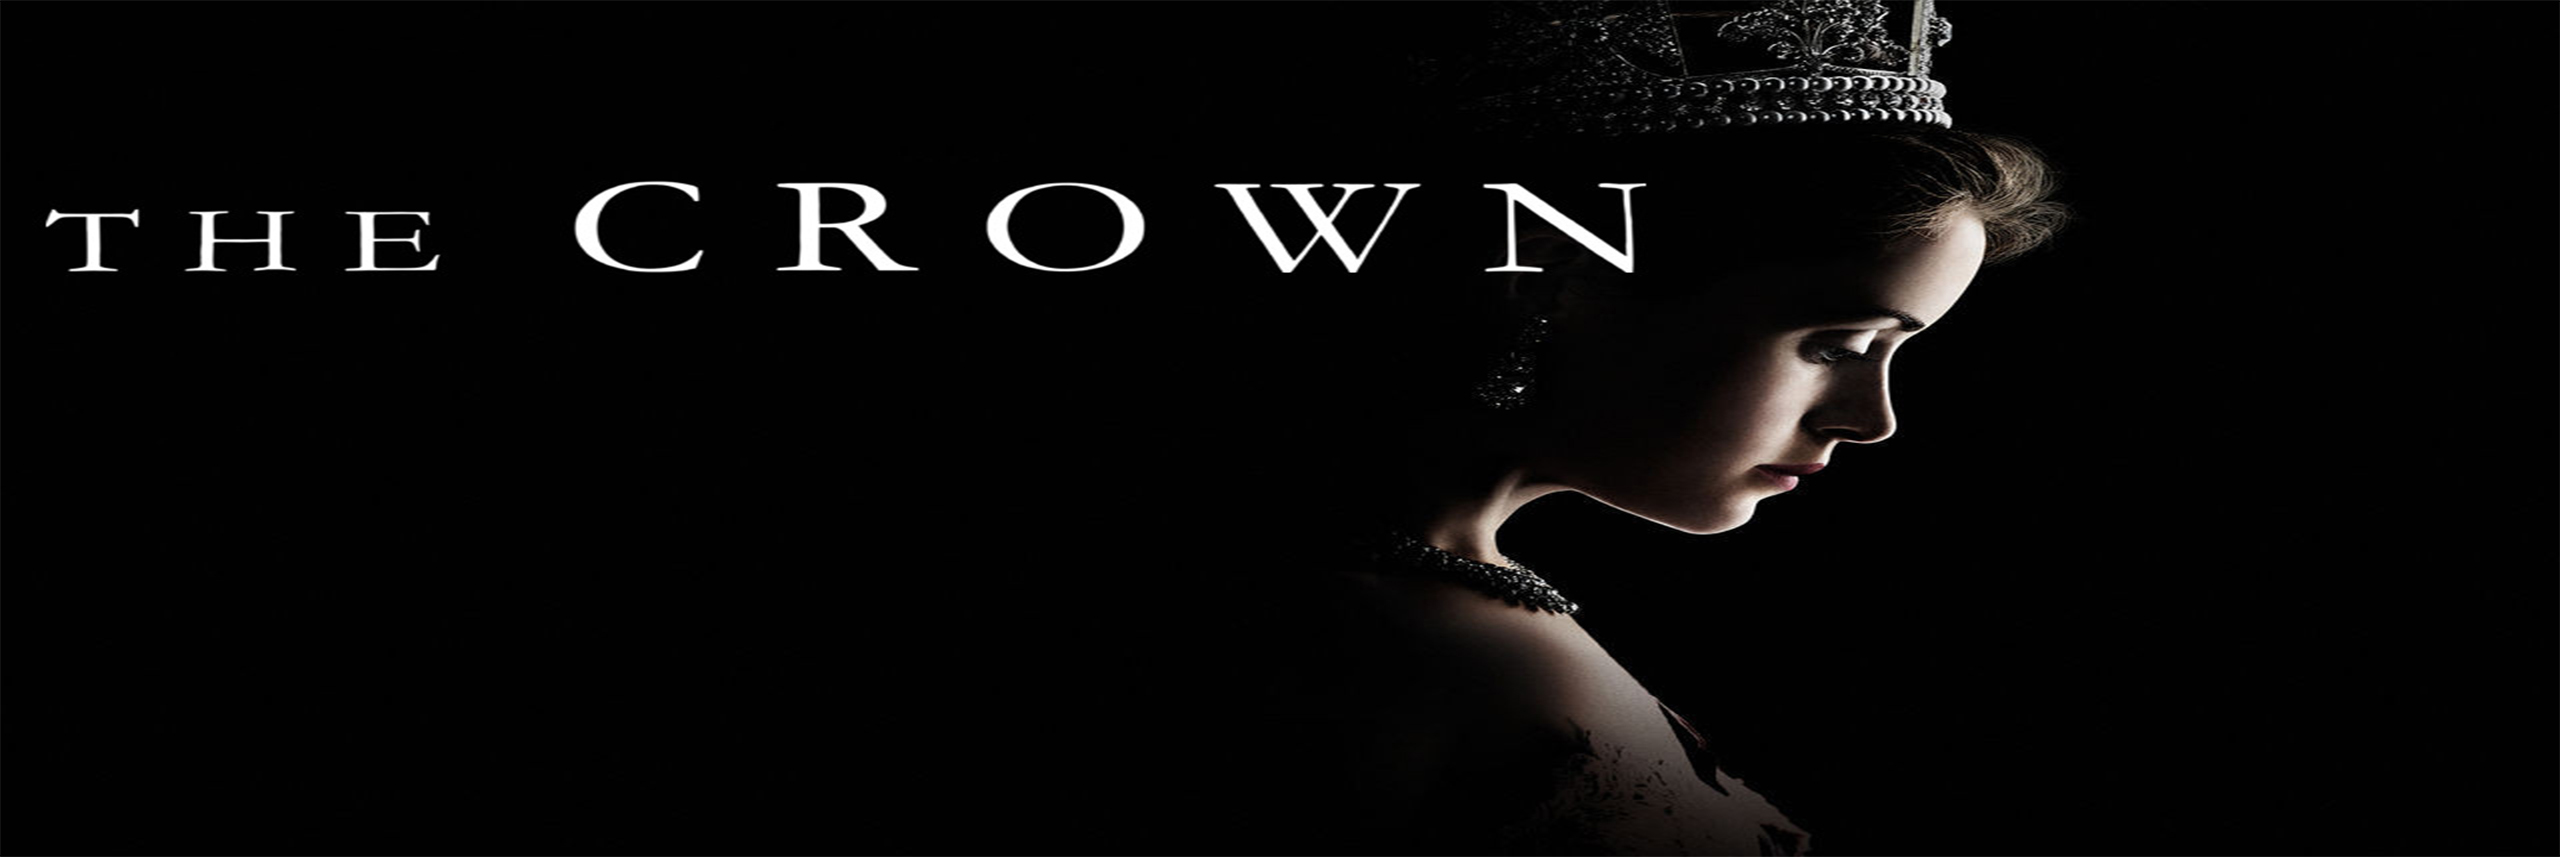 تاج – The Crown